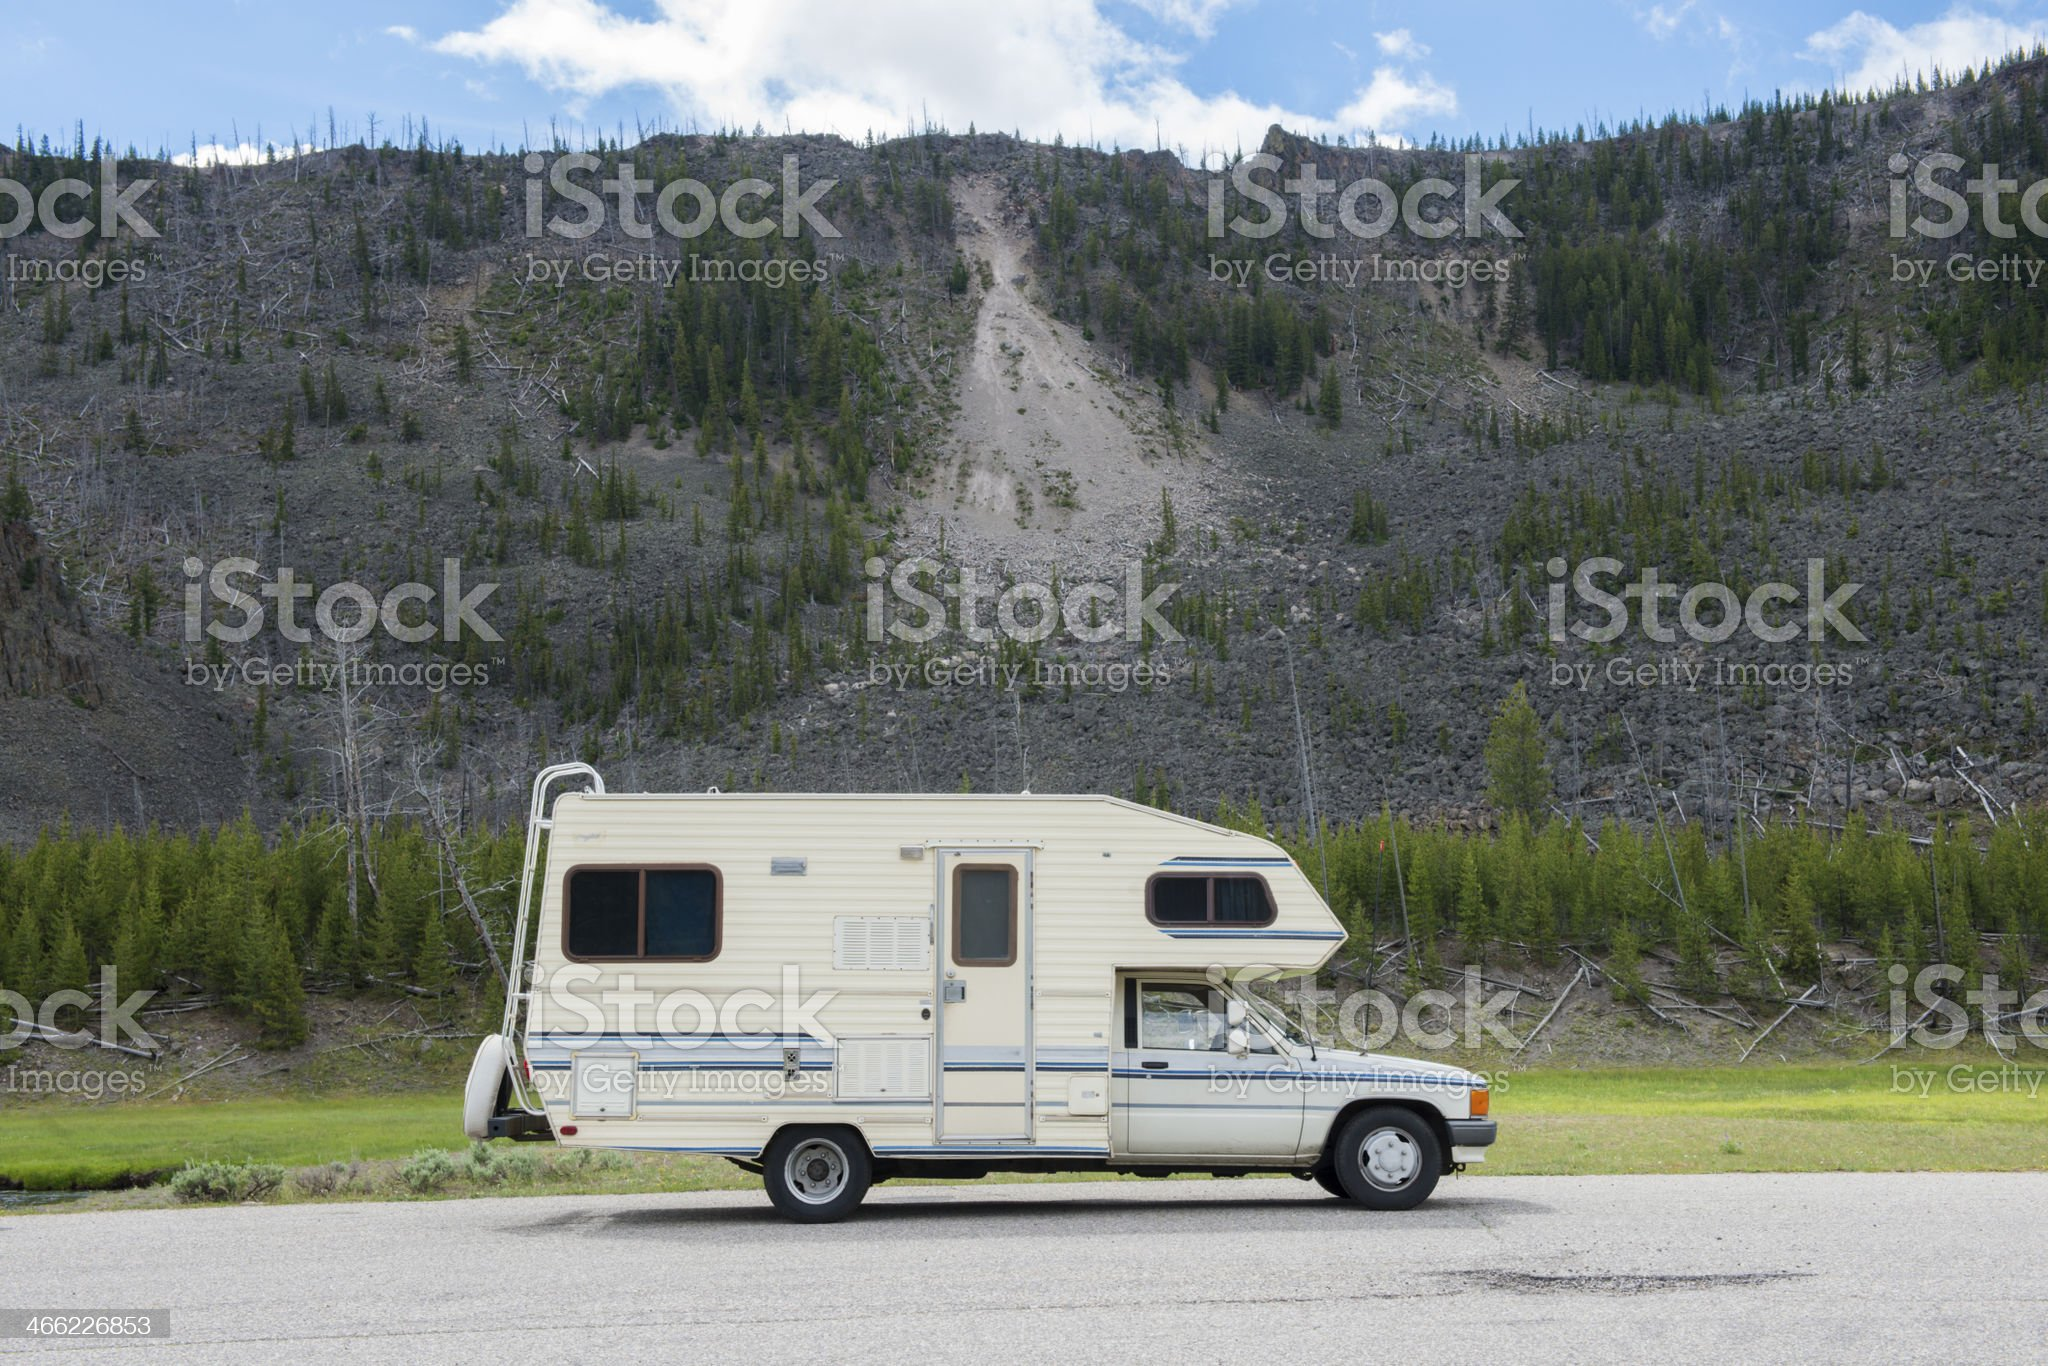 Retro Camper Truck in Yellowstone National Park royalty-free stock photo